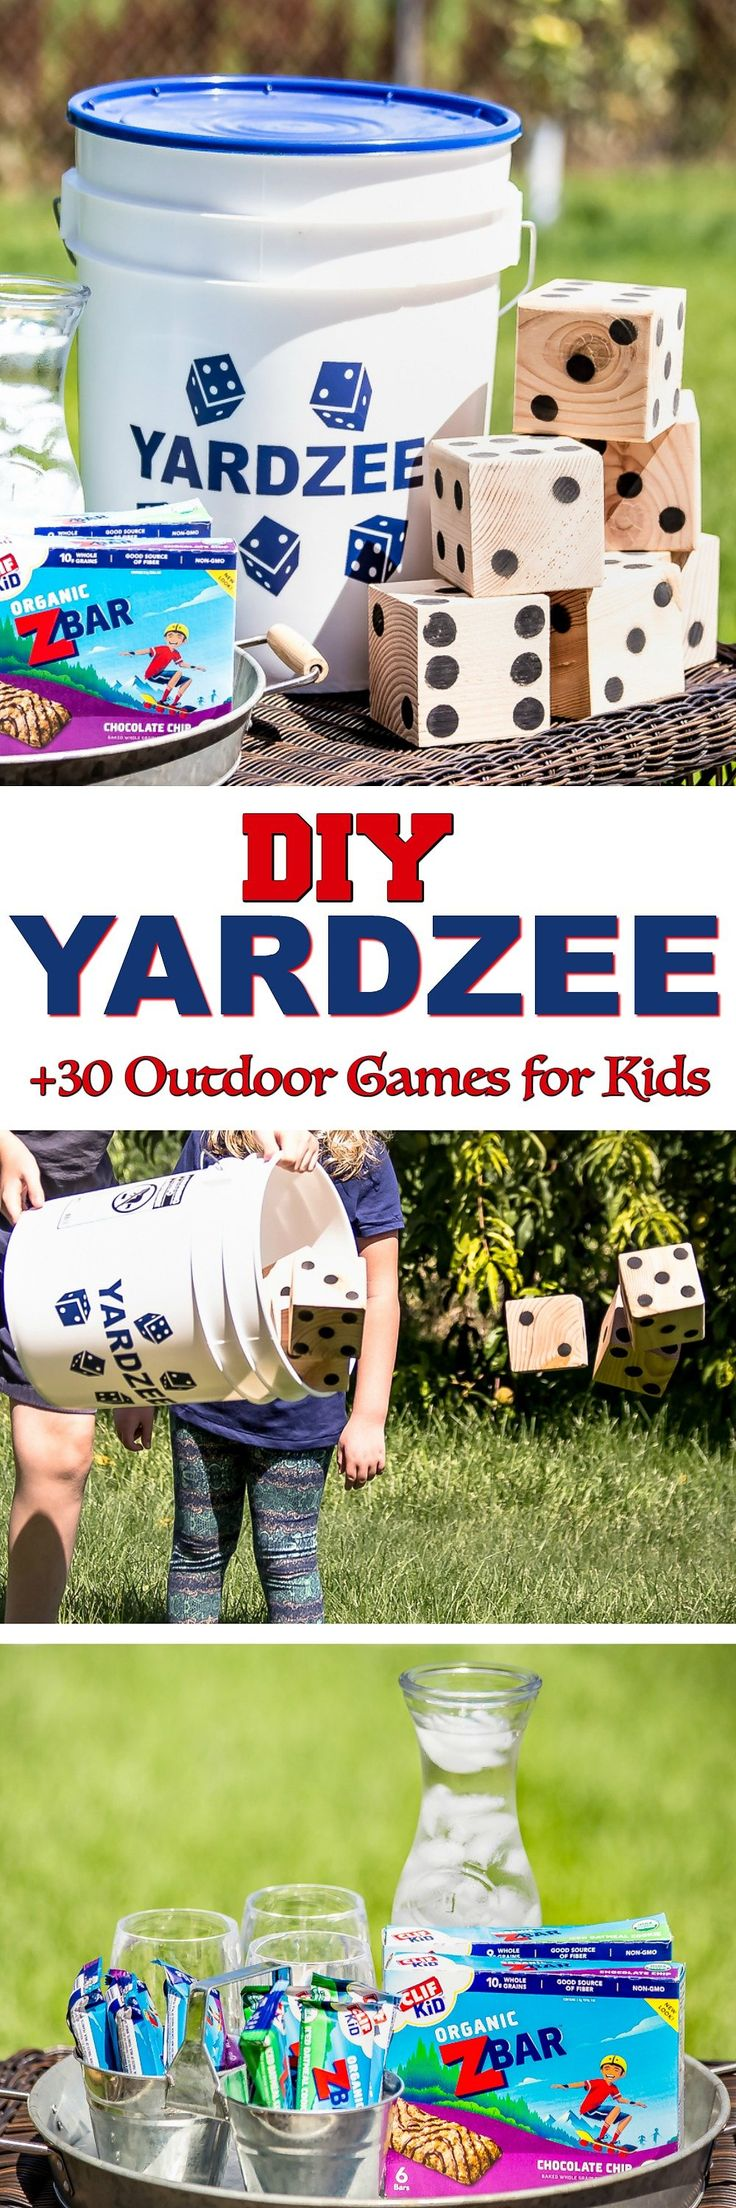 Whatever happened to PLAY? Kids spend too much time indoors. So check out these classic outdoor games for kids plus a DIY Yardzee Tutorial to get your kids outside playing and active again! #CLIFKid AD